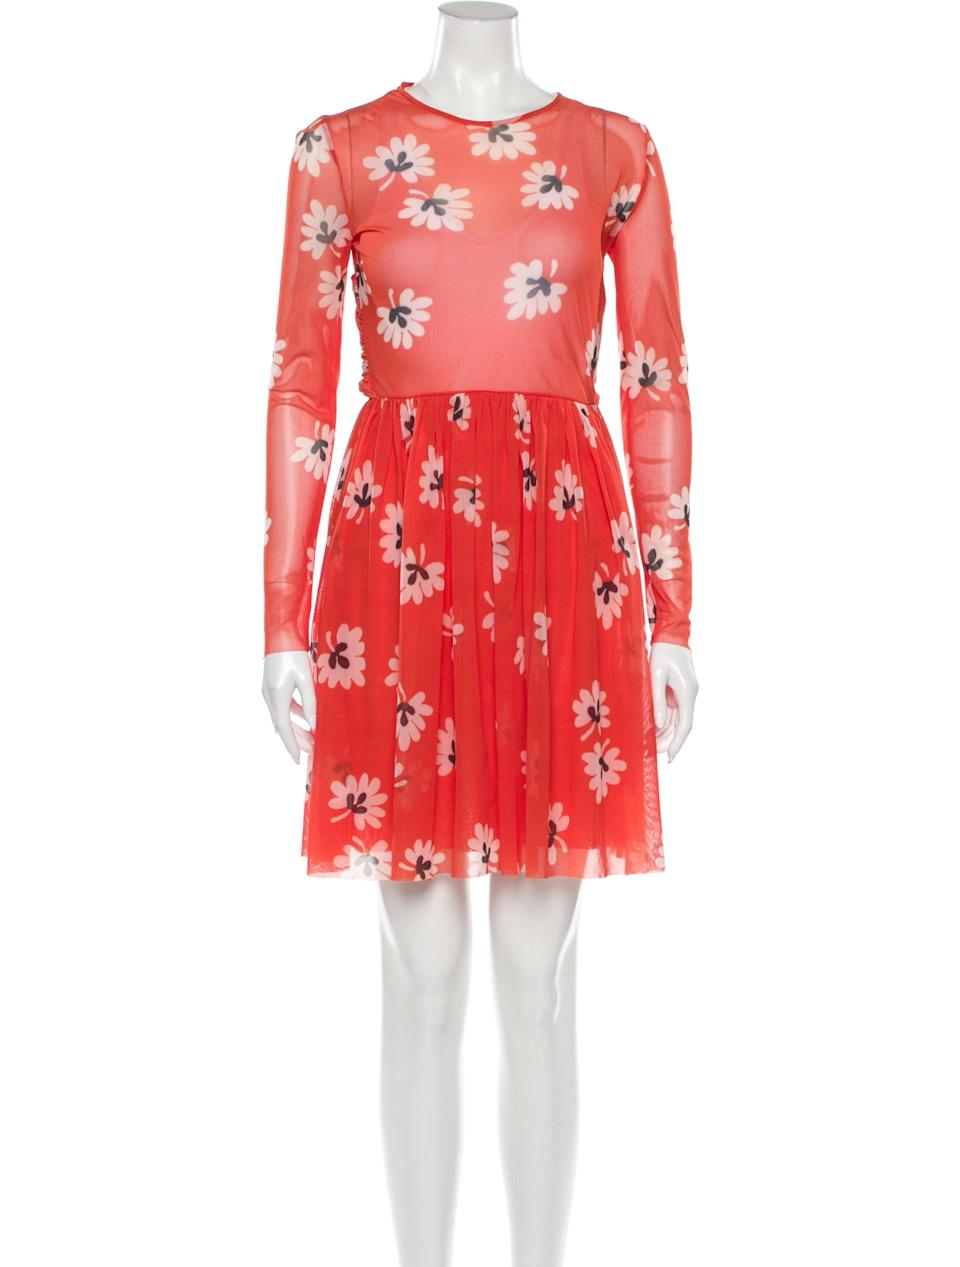 """<h2>TheRealReal Ganni Floral-Print Mesh Dress</h2><br>If there's one thing we know our readers love, it's shopping sustainably — and TheRealReal offers plenty of options that keep our dollars within the """"<a href=""""https://www.ellenmacarthurfoundation.org/circular-economy/concept"""" rel=""""nofollow noopener"""" target=""""_blank"""" data-ylk=""""slk:circular economy"""" class=""""link rapid-noclick-resp"""">circular economy</a>,"""" lessening waste by using existing resources. Even better, this vast consignment retailer houses scores of options from all our favorite brands — like this red mesh <a href=""""https://www.therealreal.com/designers/ganni"""" rel=""""nofollow noopener"""" target=""""_blank"""" data-ylk=""""slk:Ganni"""" class=""""link rapid-noclick-resp"""">Ganni</a> dress that we can see ourselves throwing on every weekend for the next four months.<br><br><strong>Ganni</strong> Floral Print Knee-Length Dress, $, available at <a href=""""https://go.skimresources.com/?id=30283X879131&url=https%3A%2F%2Fwww.therealreal.com%2Fproducts%2Fwomen%2Fclothing%2Fdresses%2Fganni-floral-print-knee-length-dress-w-tags-7oz12%3Fposition%3D106"""" rel=""""nofollow noopener"""" target=""""_blank"""" data-ylk=""""slk:TheRealReal"""" class=""""link rapid-noclick-resp"""">TheRealReal</a>"""